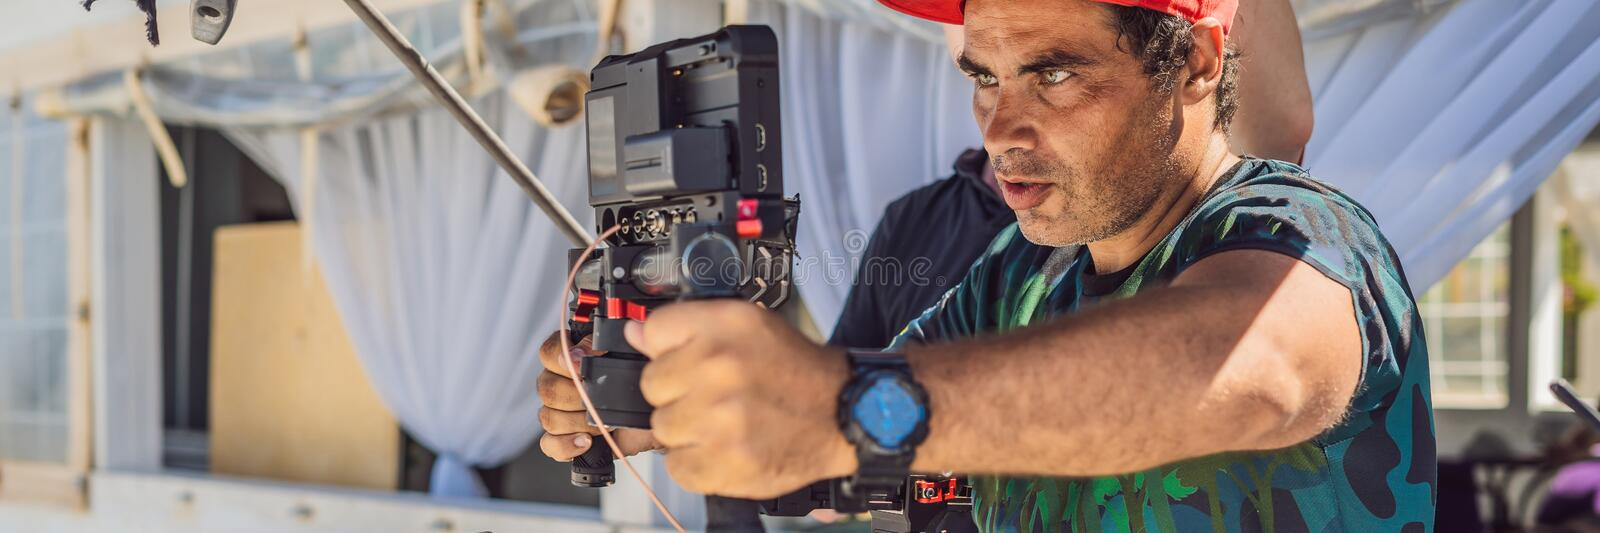 The production team on a commercial video shoot. Steadicam operator uses the 3-axis camera stabilizer and cinema-grade. Camera. BANNER, LONG FORMAT stock images